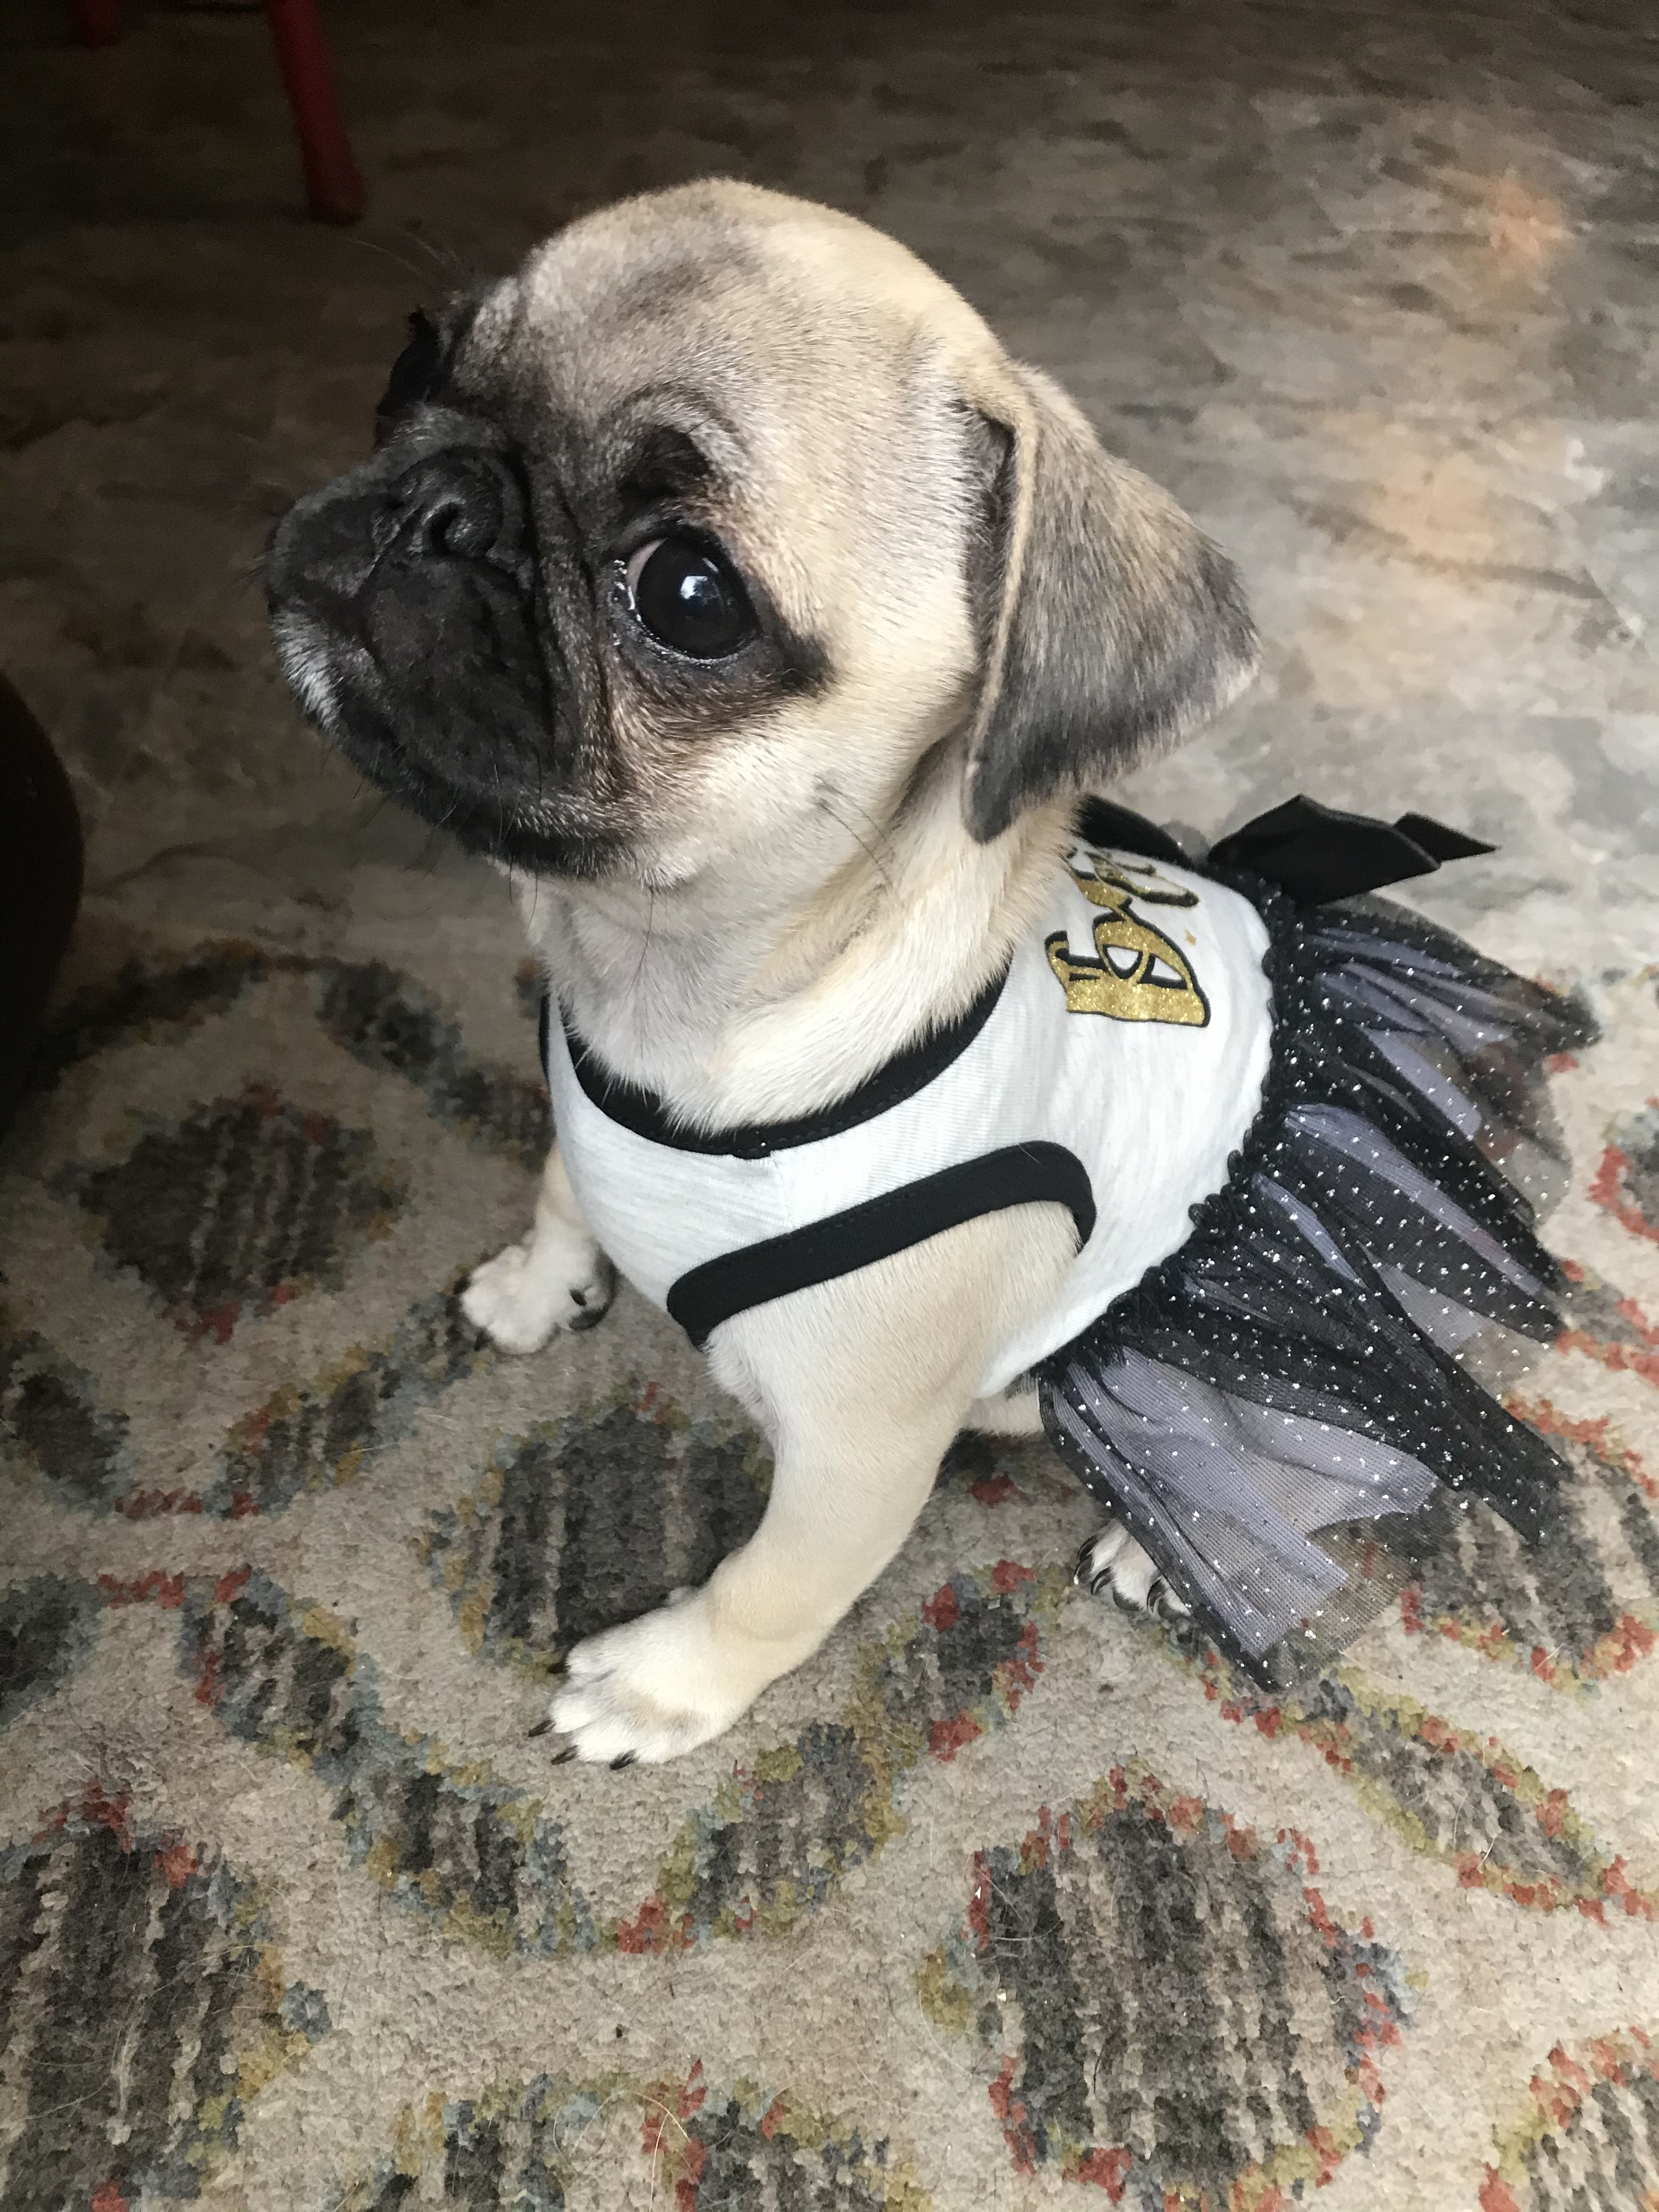 Pin By Helen Britt On Dogs In 2020 Pug Puppies Puppies Pug Dog